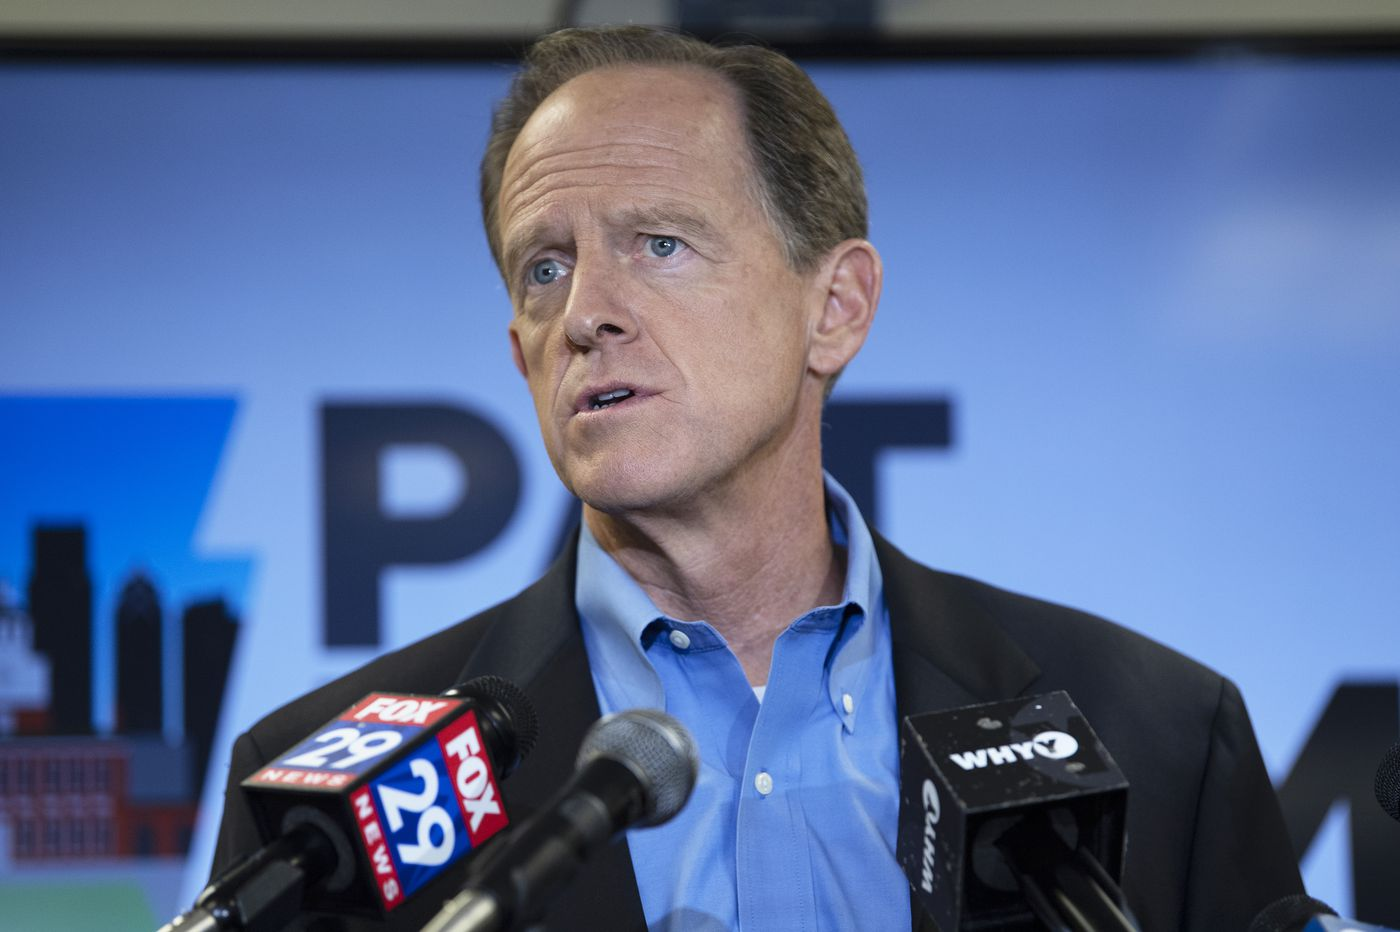 Pat Toomey for governor? As he weighs in on Pa. coronavirus plans, insiders see a marker for the future